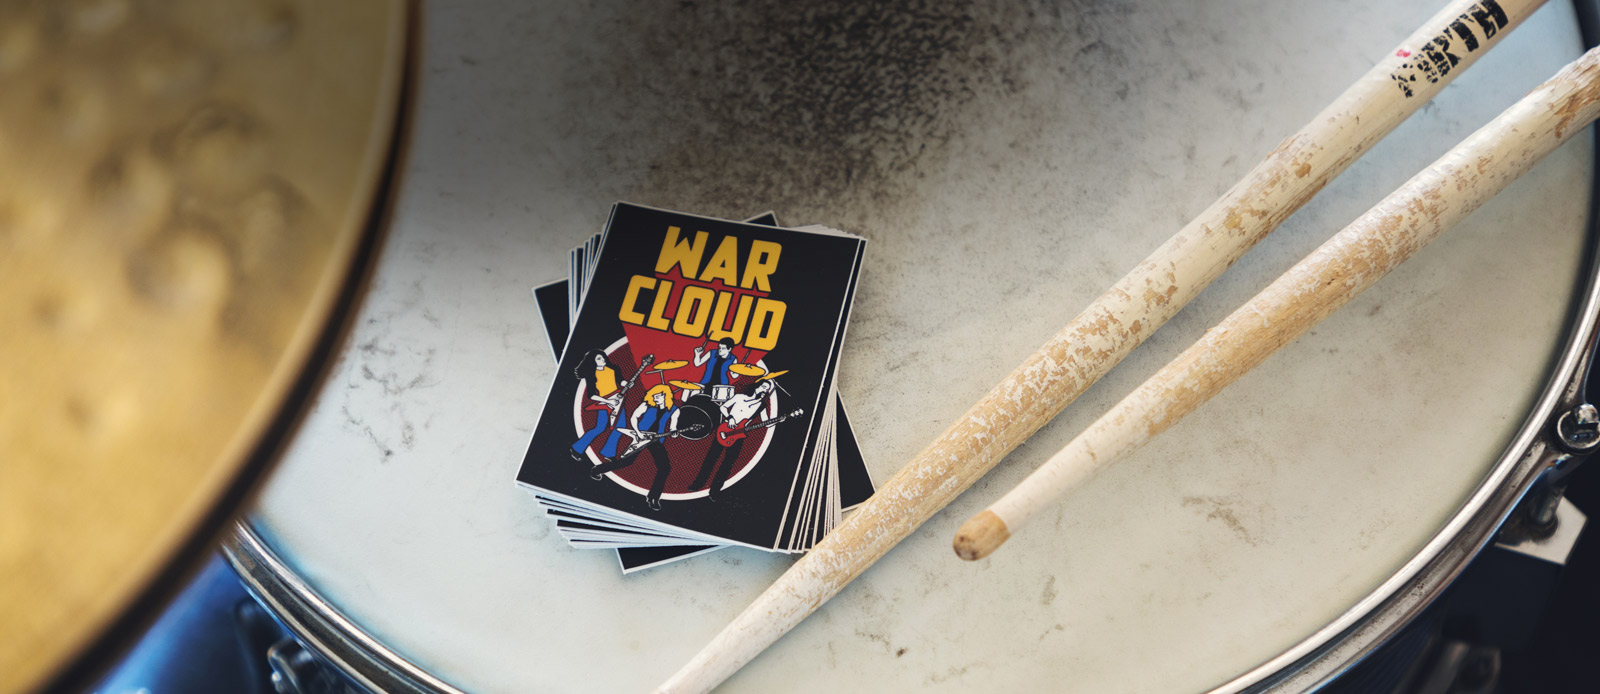 Band stickers by Sticker Mule